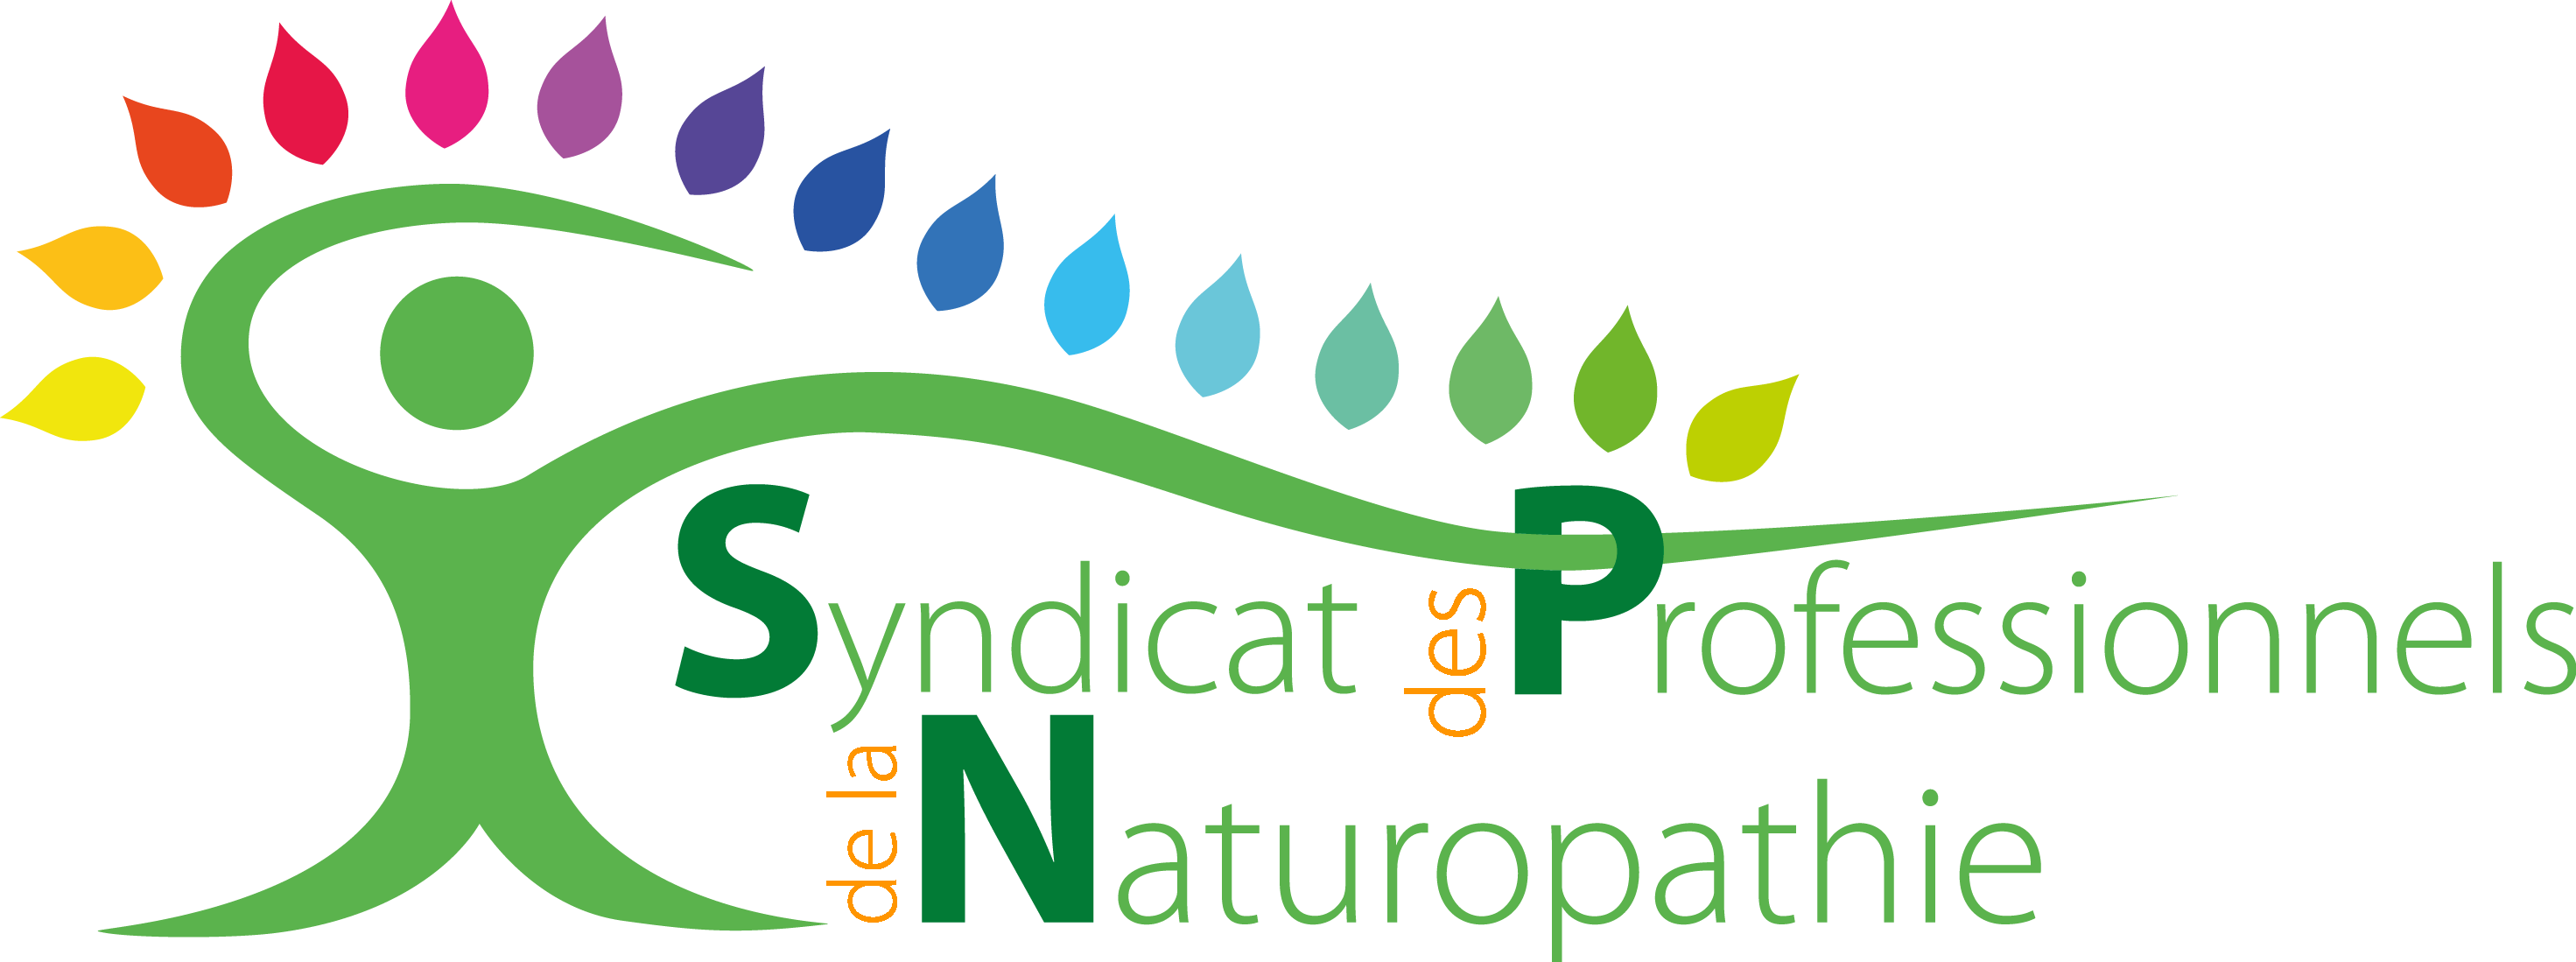 Logo Syndicat des Professionnels de la Naturopathie